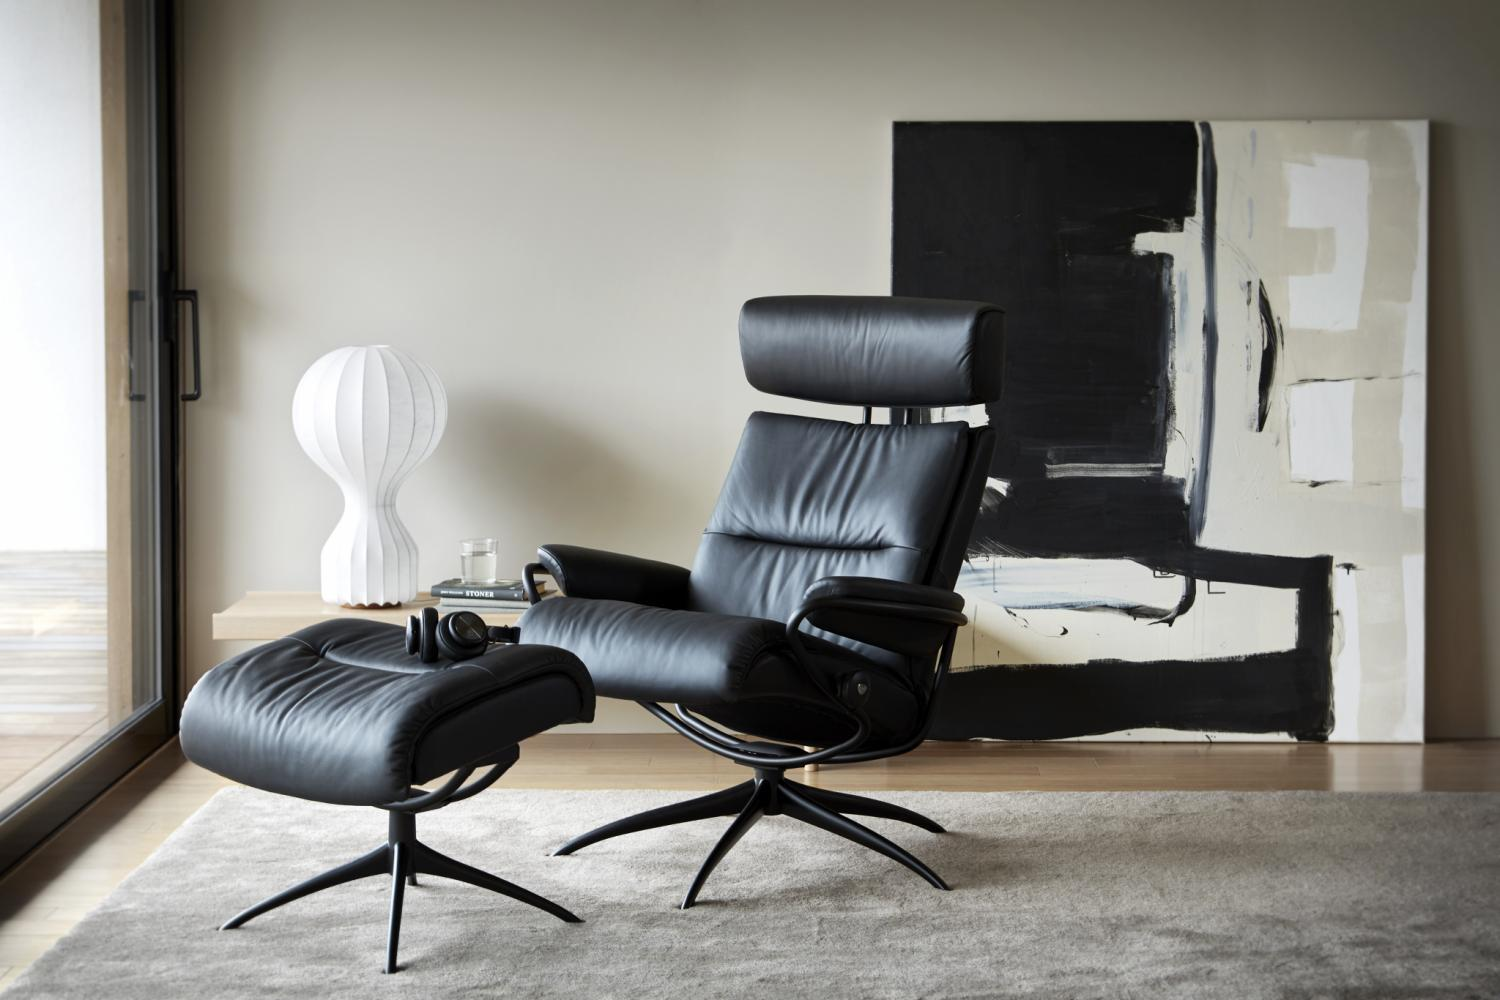 fauteuil stressless Tokyo_Adjustable